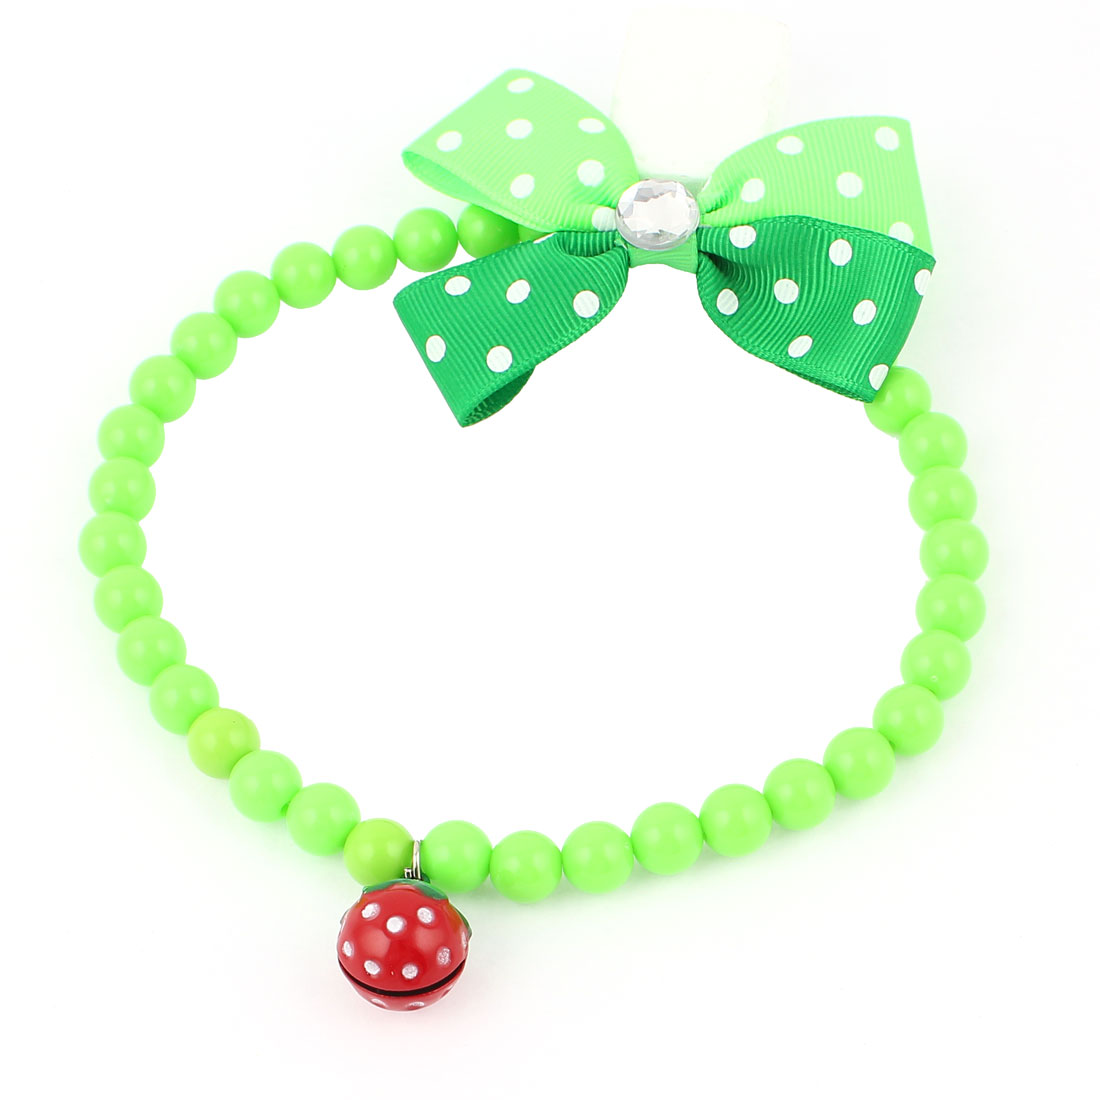 Metal Bell Pendant Bowtie Accent Pet Dog Plastic Beads Collar Necklace Green L